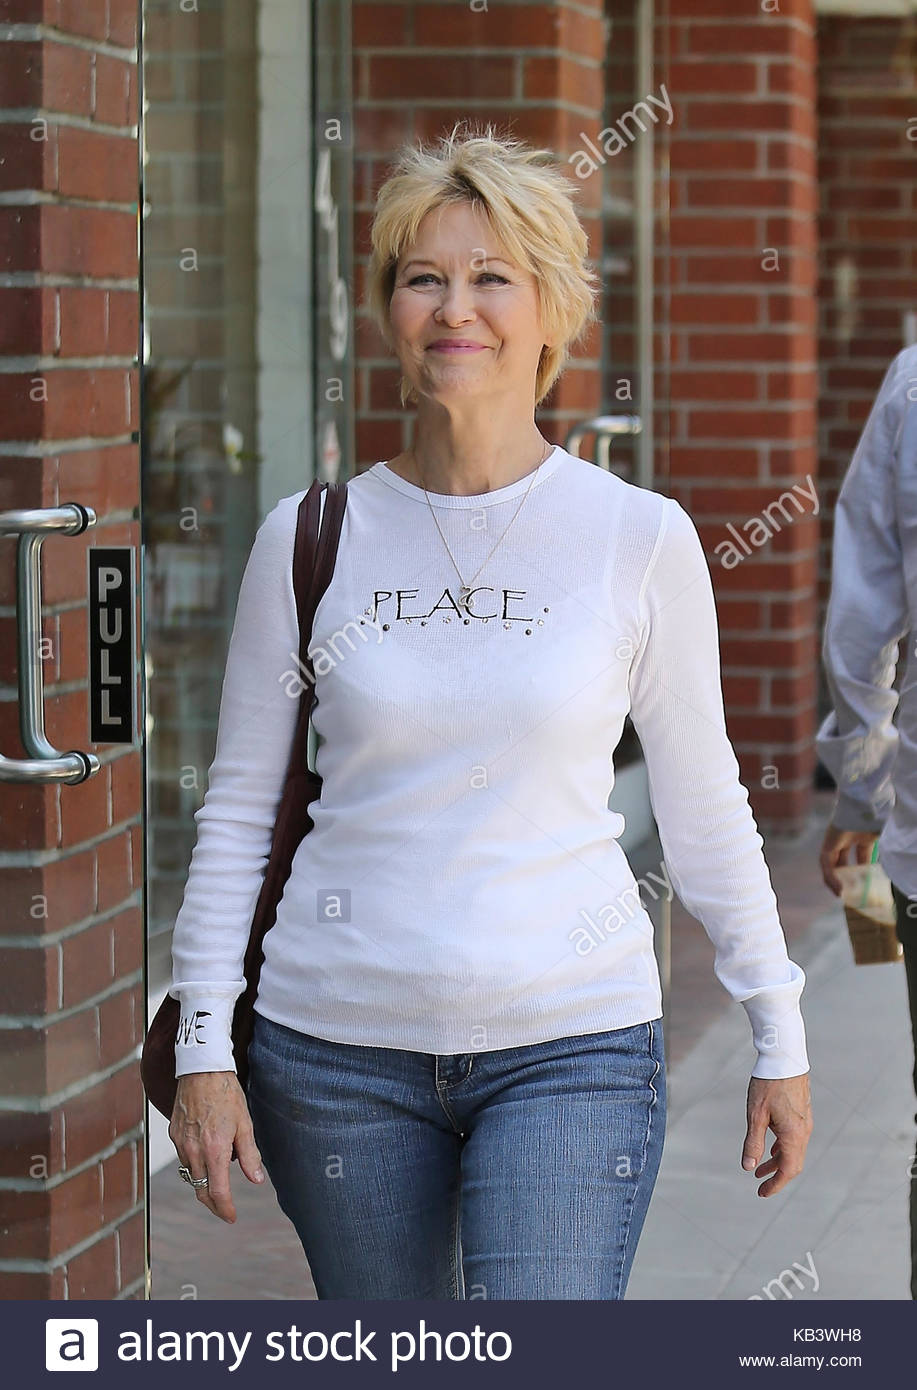 Forum on this topic: Lela Lee, dee-wallace/